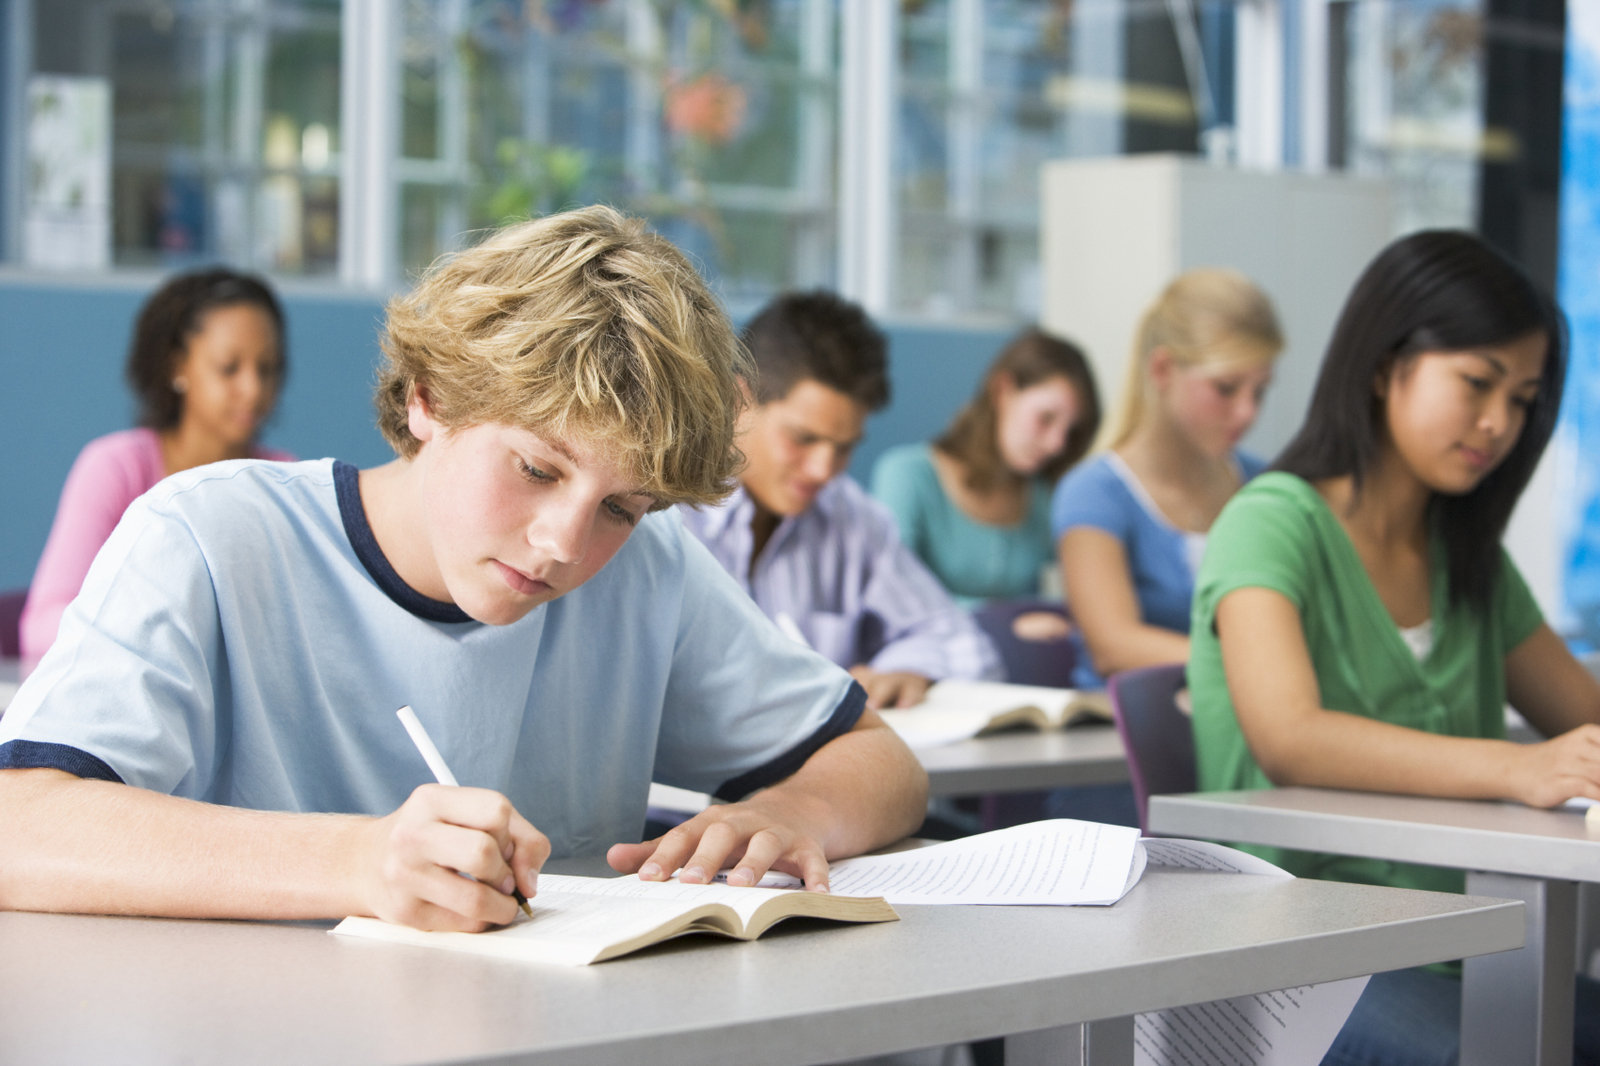 high school and college assessment examination Schools are increasingly making students sit for one last exam before high school juniors and seniors will file into school cafeterias to in all, only about a third of colleges and universities make assessment results public,.